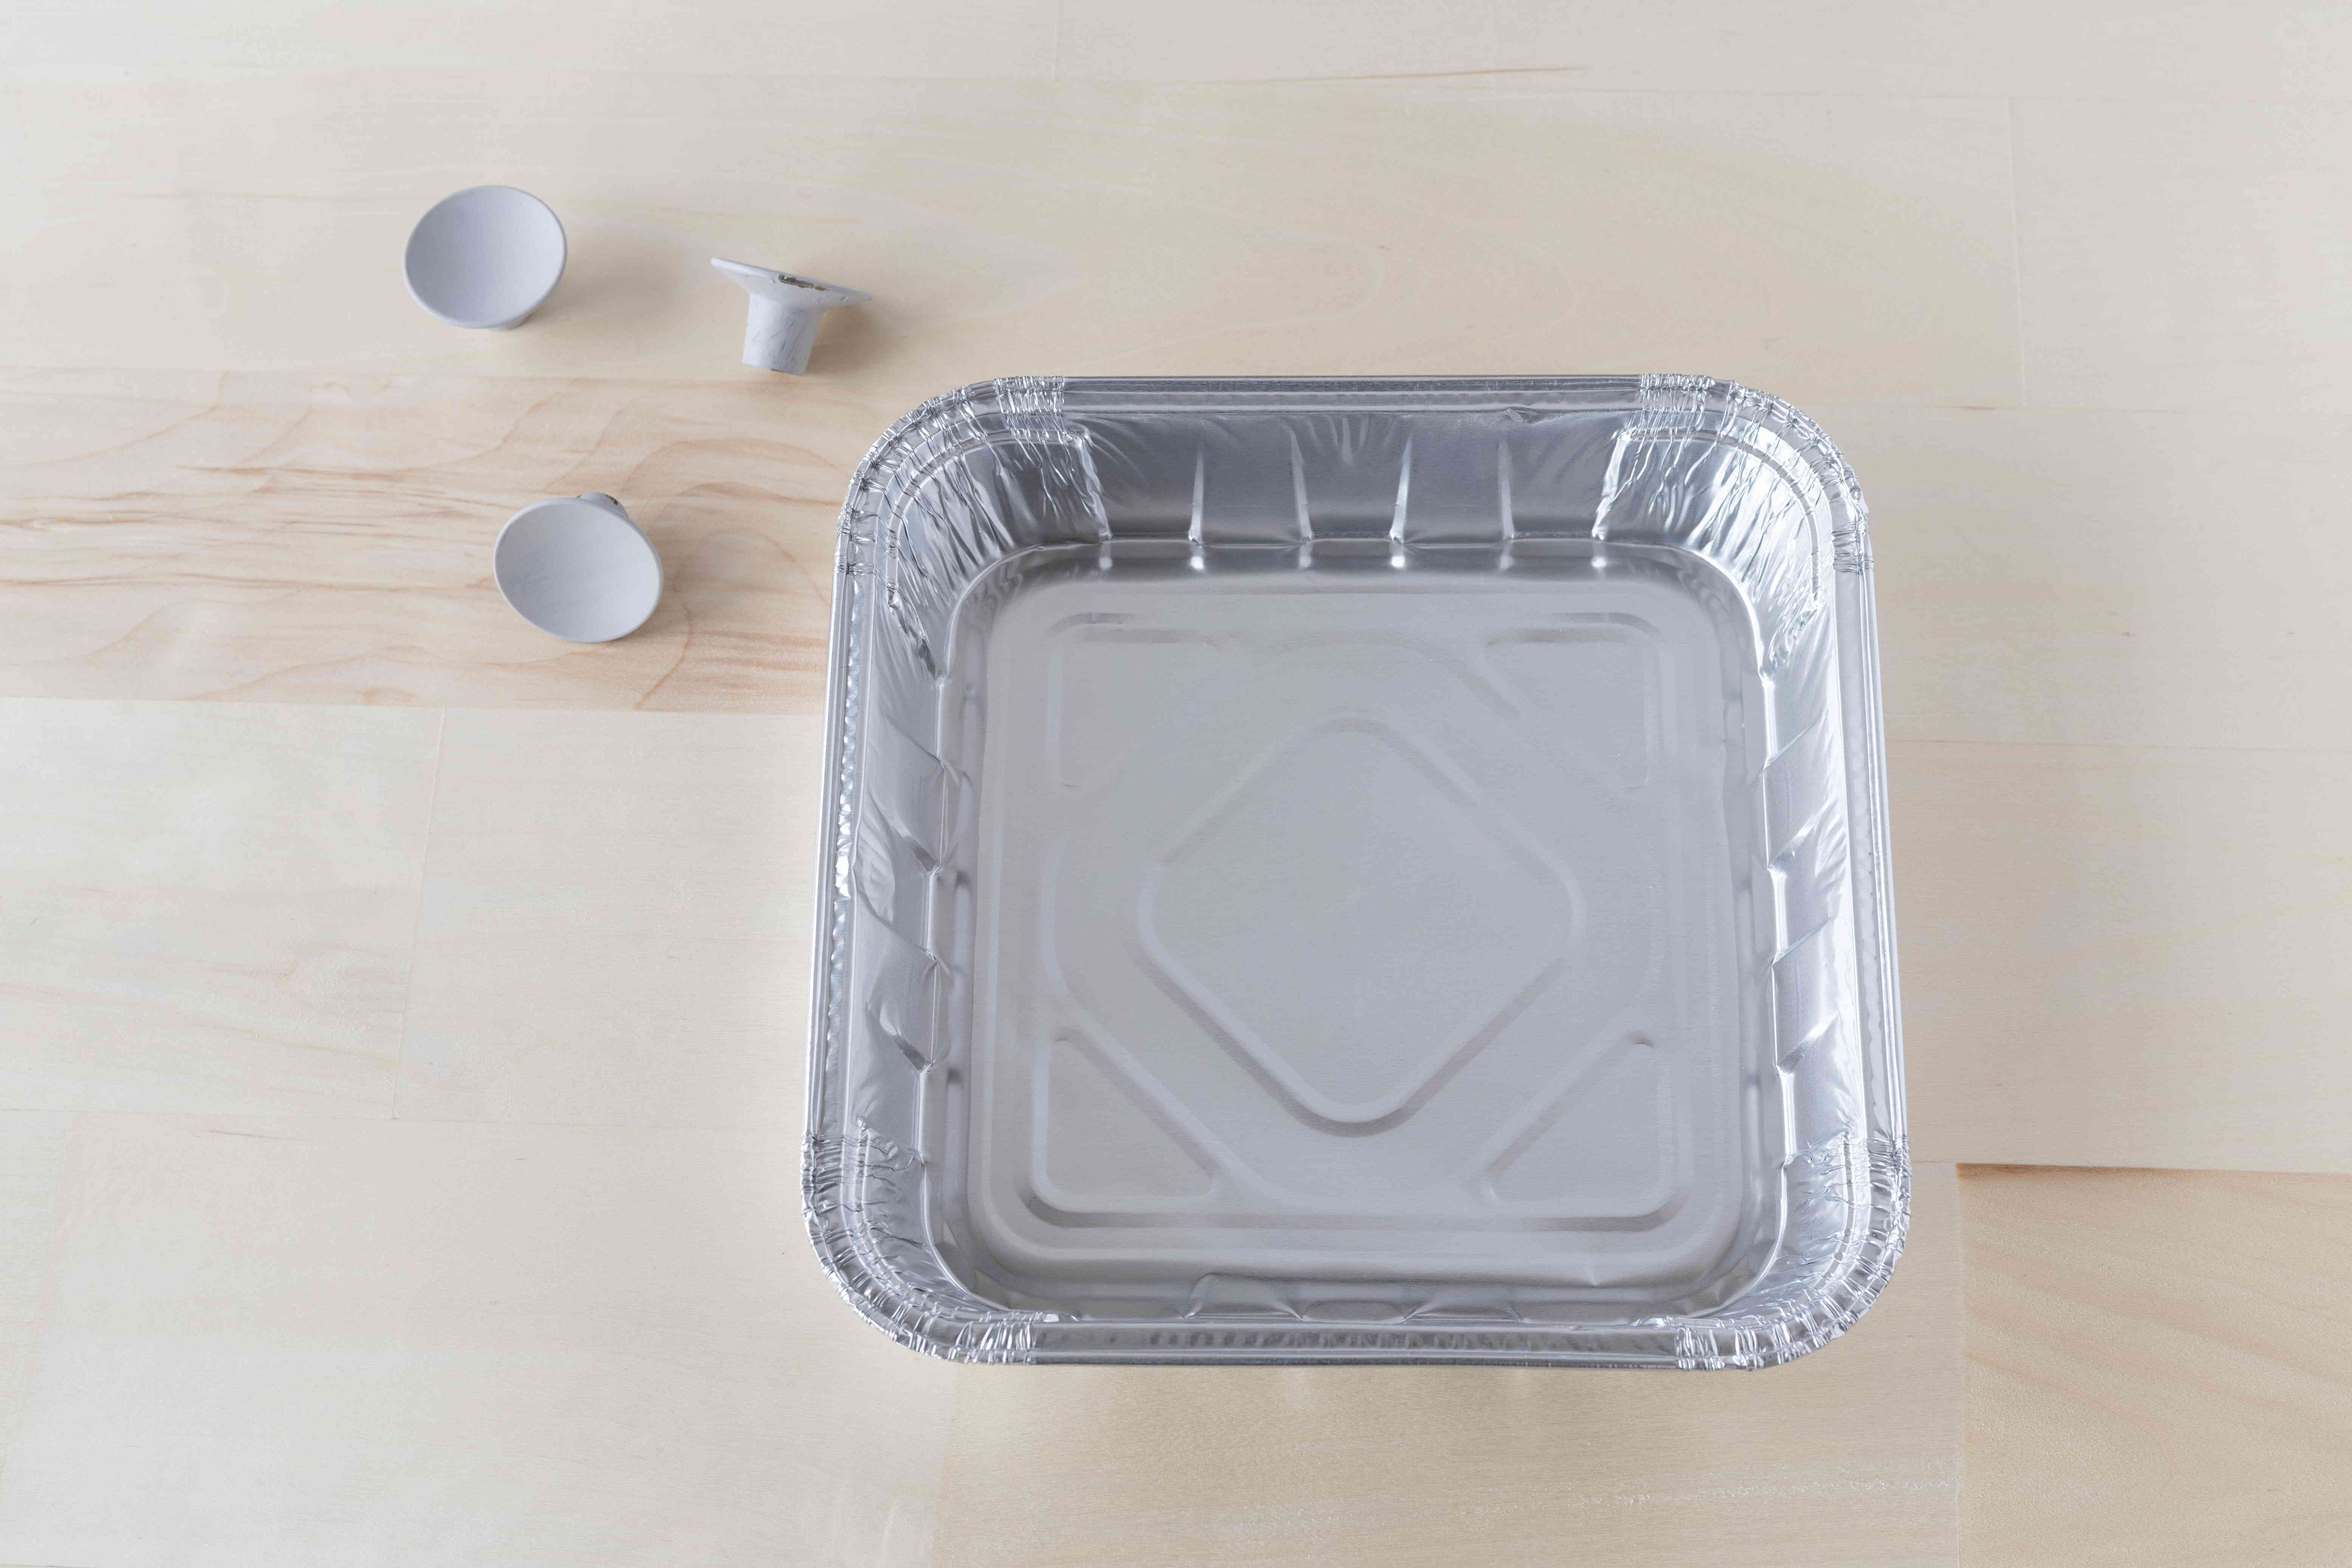 Disposable aluminum tray next to painted metal knobs on wood surface